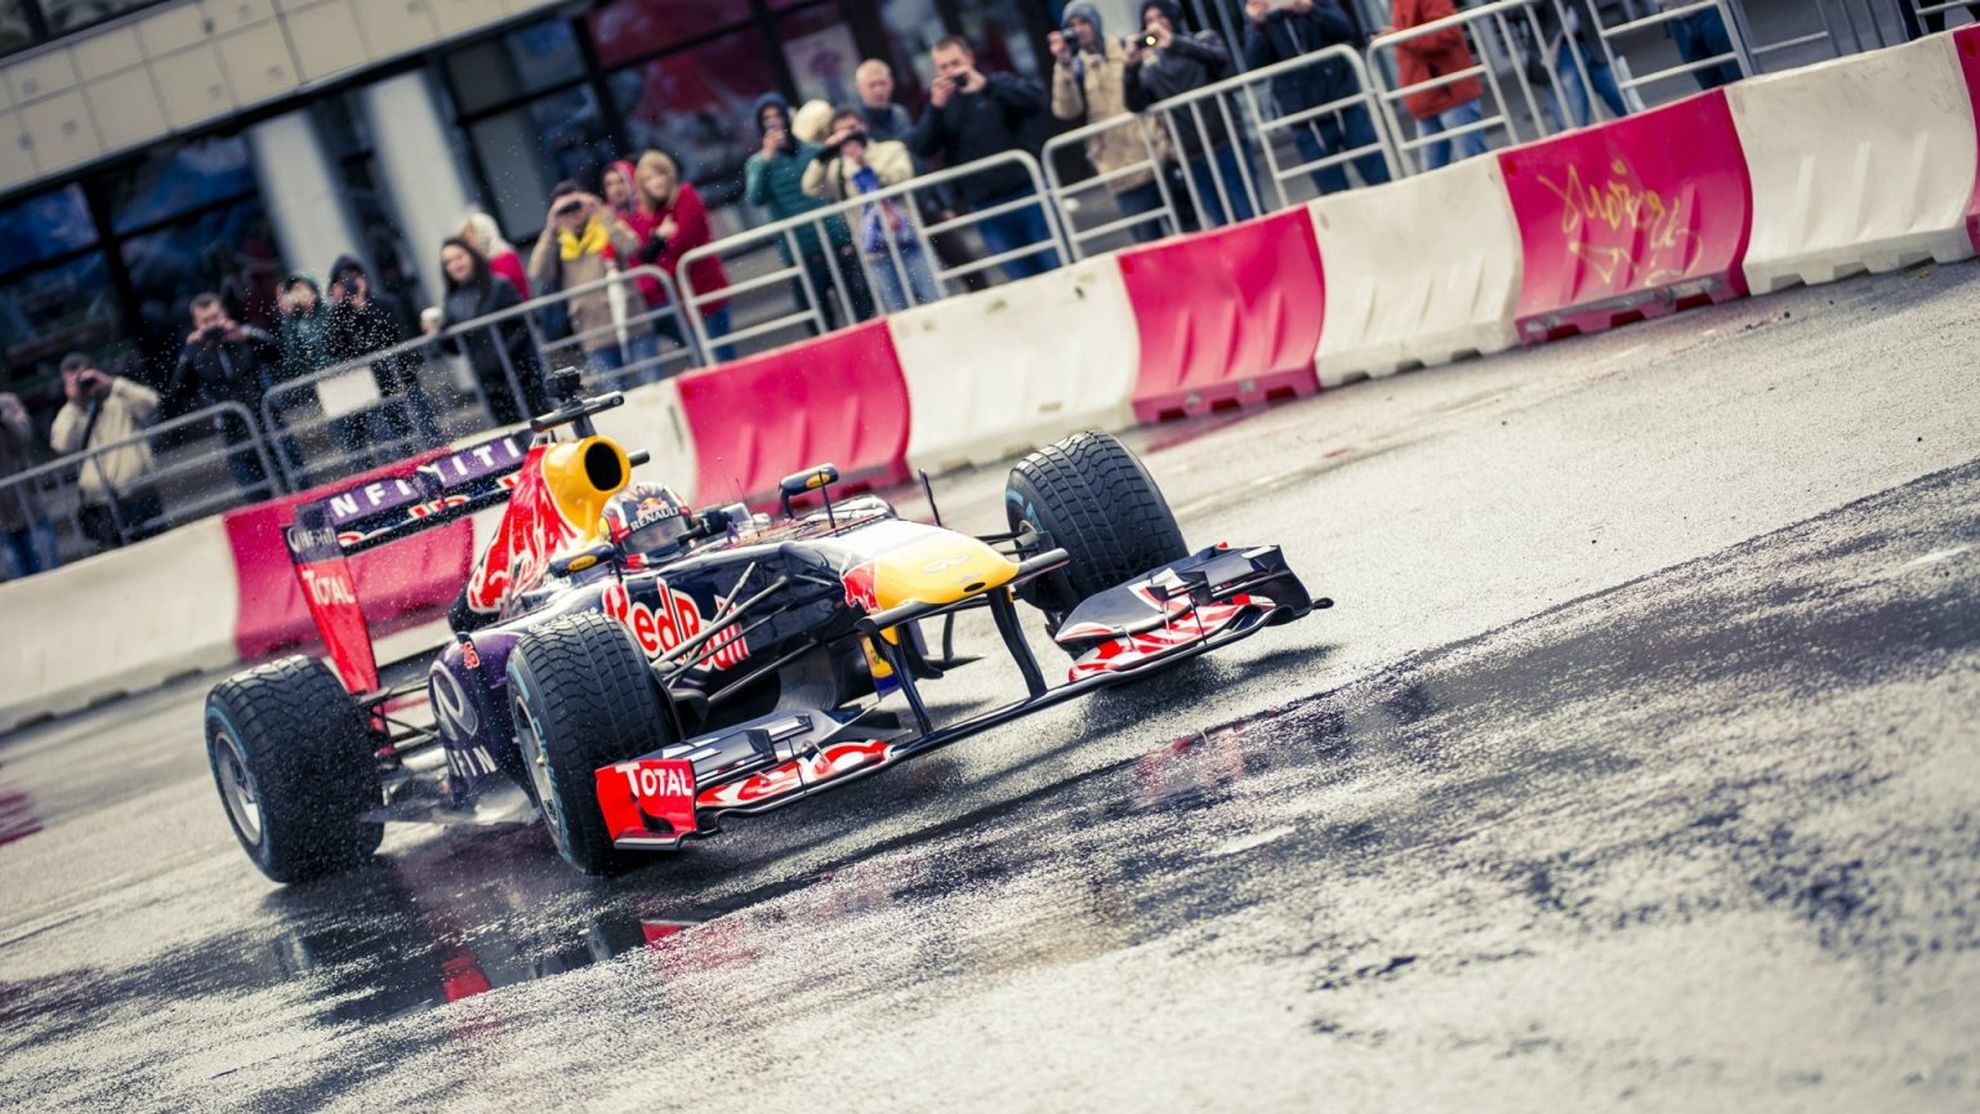 Daniil-Kvyat-put-on-a-show-for-fans-in-his-homeland-over-the-weekend-when-he-joined-the-Kazan-City-Racing-demonstration-on-Sunday-2